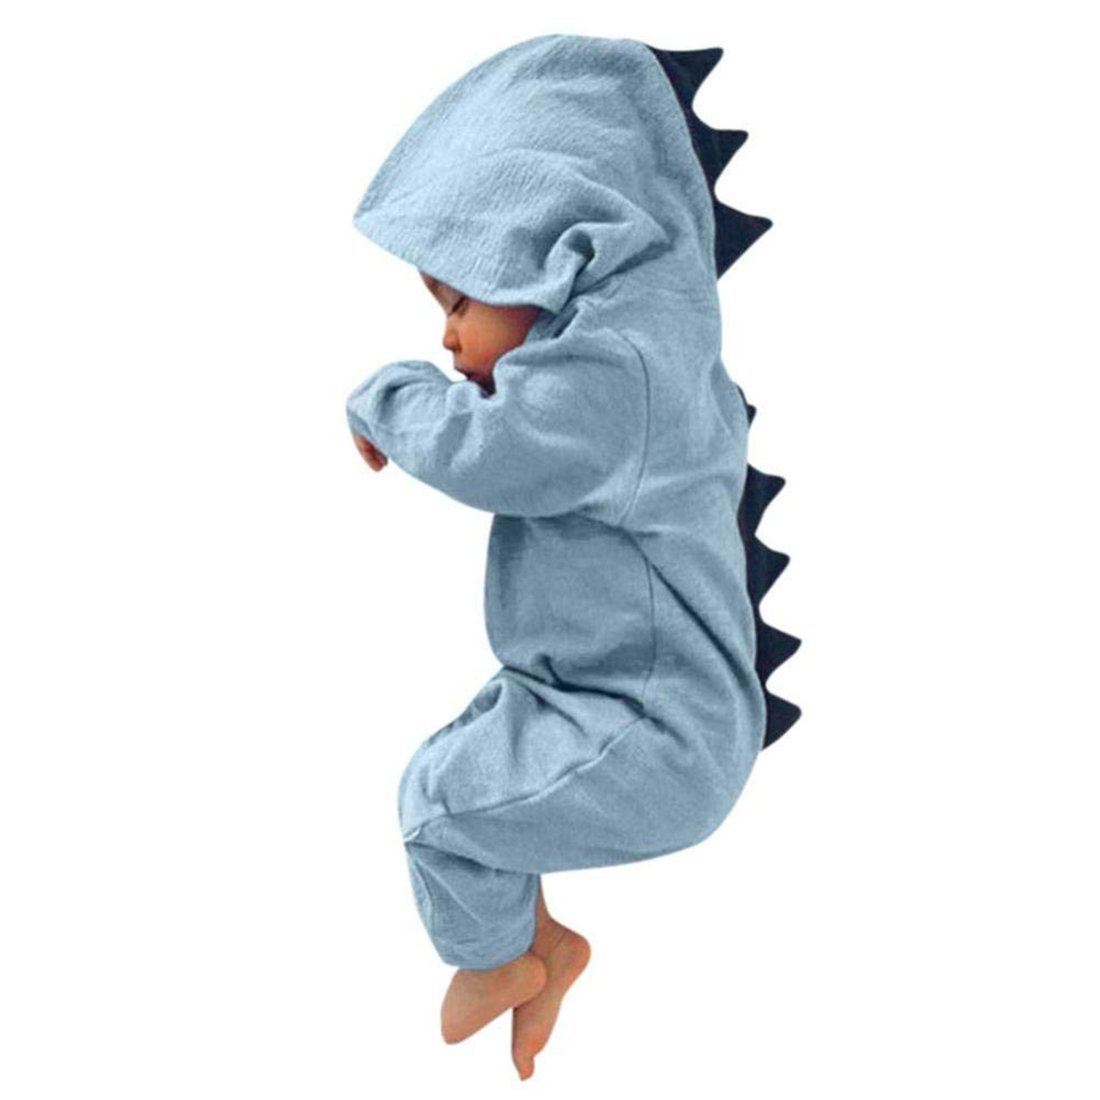 CKLV Interesting Romper Jumpsuit Outfits Clothes,Infant Baby Kids Dinosaur Hooded Romper Jumpsuit Outfits Clothes (Blue, 12-18 Months)